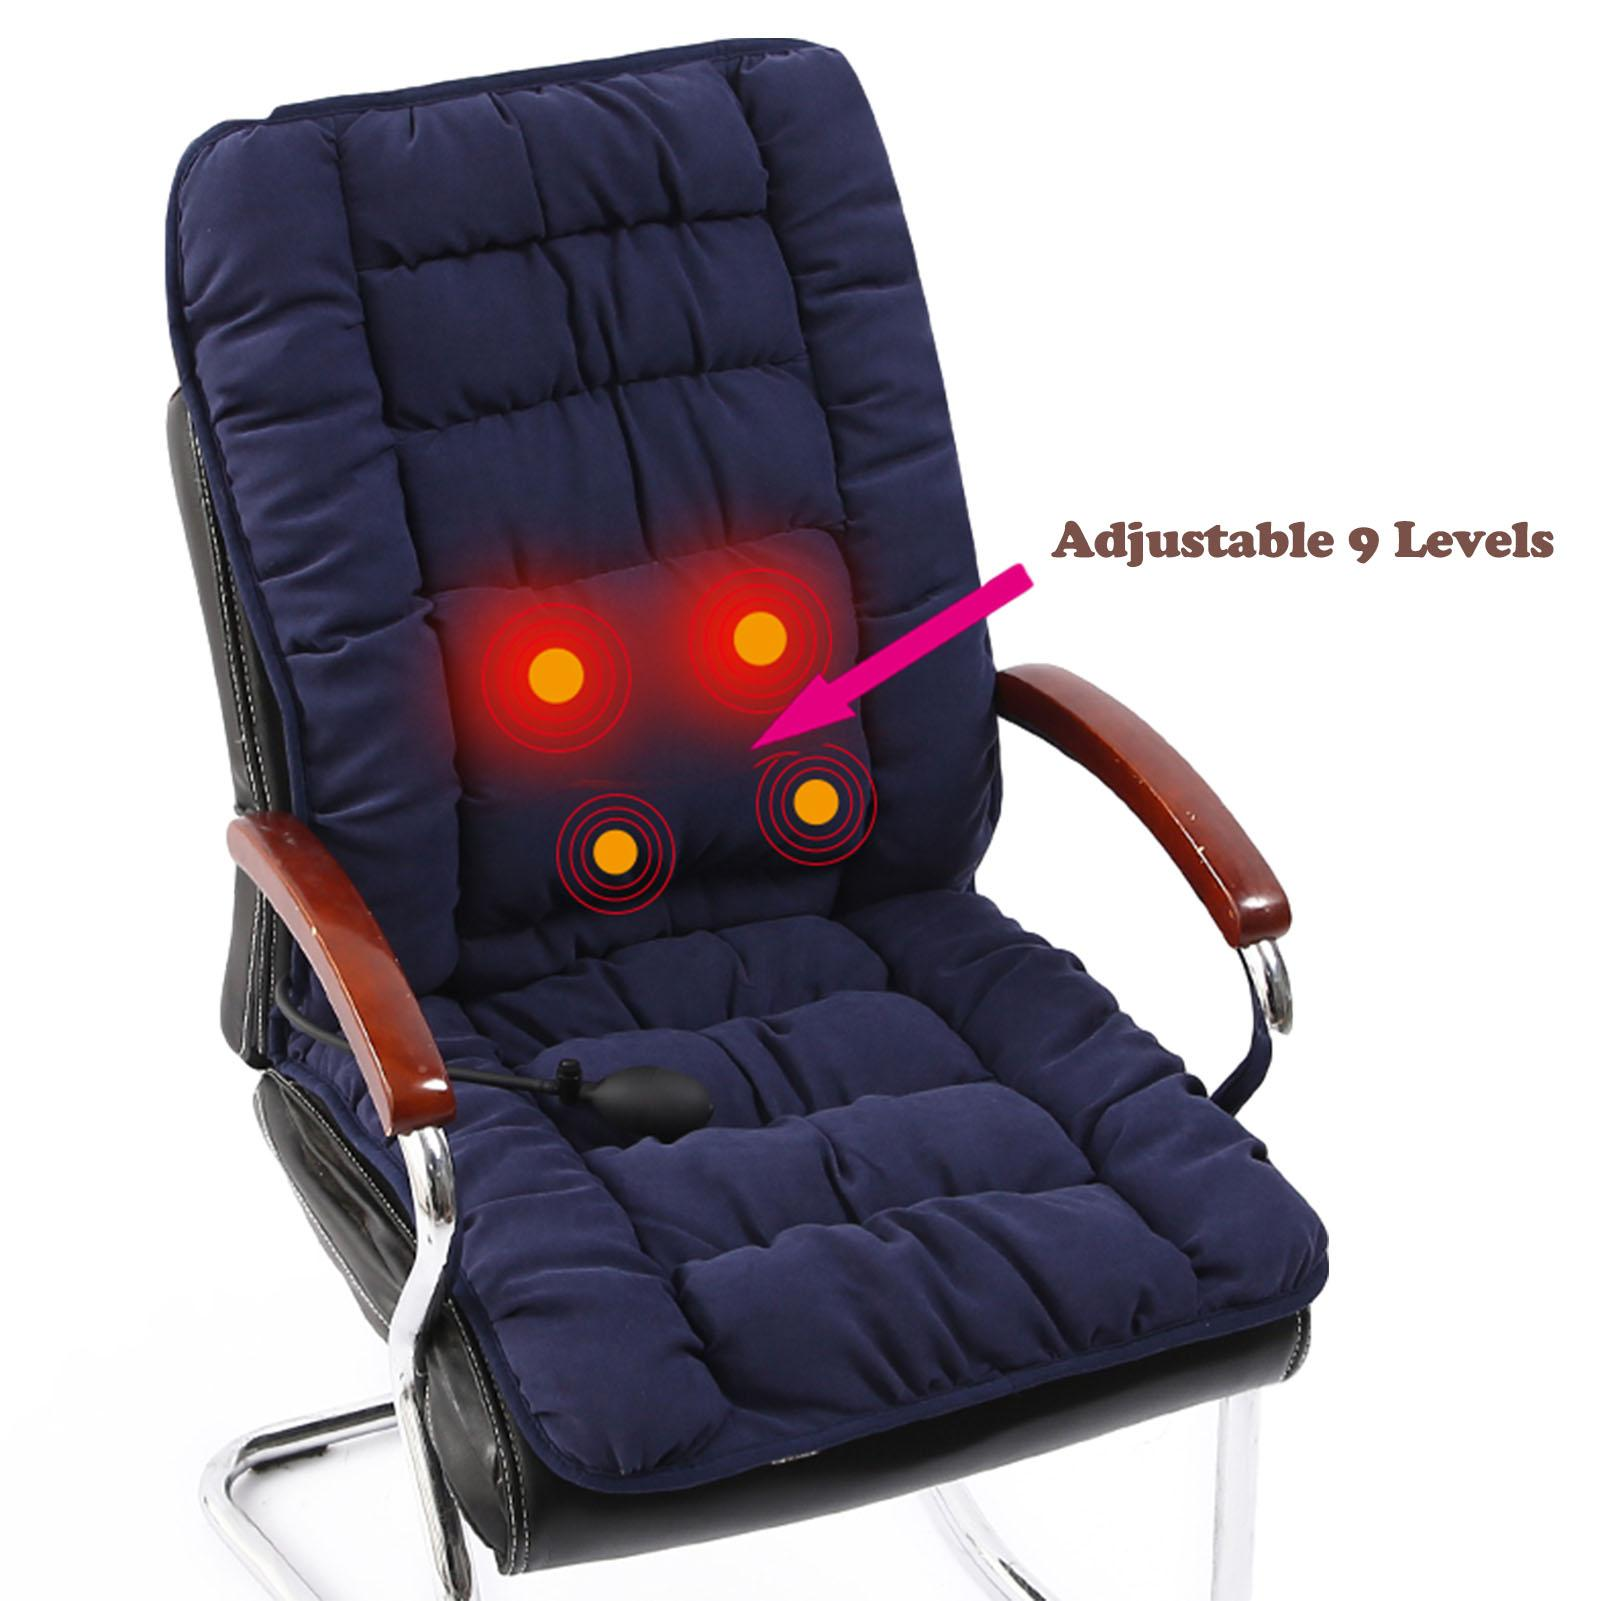 Universal Seat Heater with Adjuatable Temperature Office Chair Use Heated Seat Cover for Home COMFIER Heated Seat Cushion